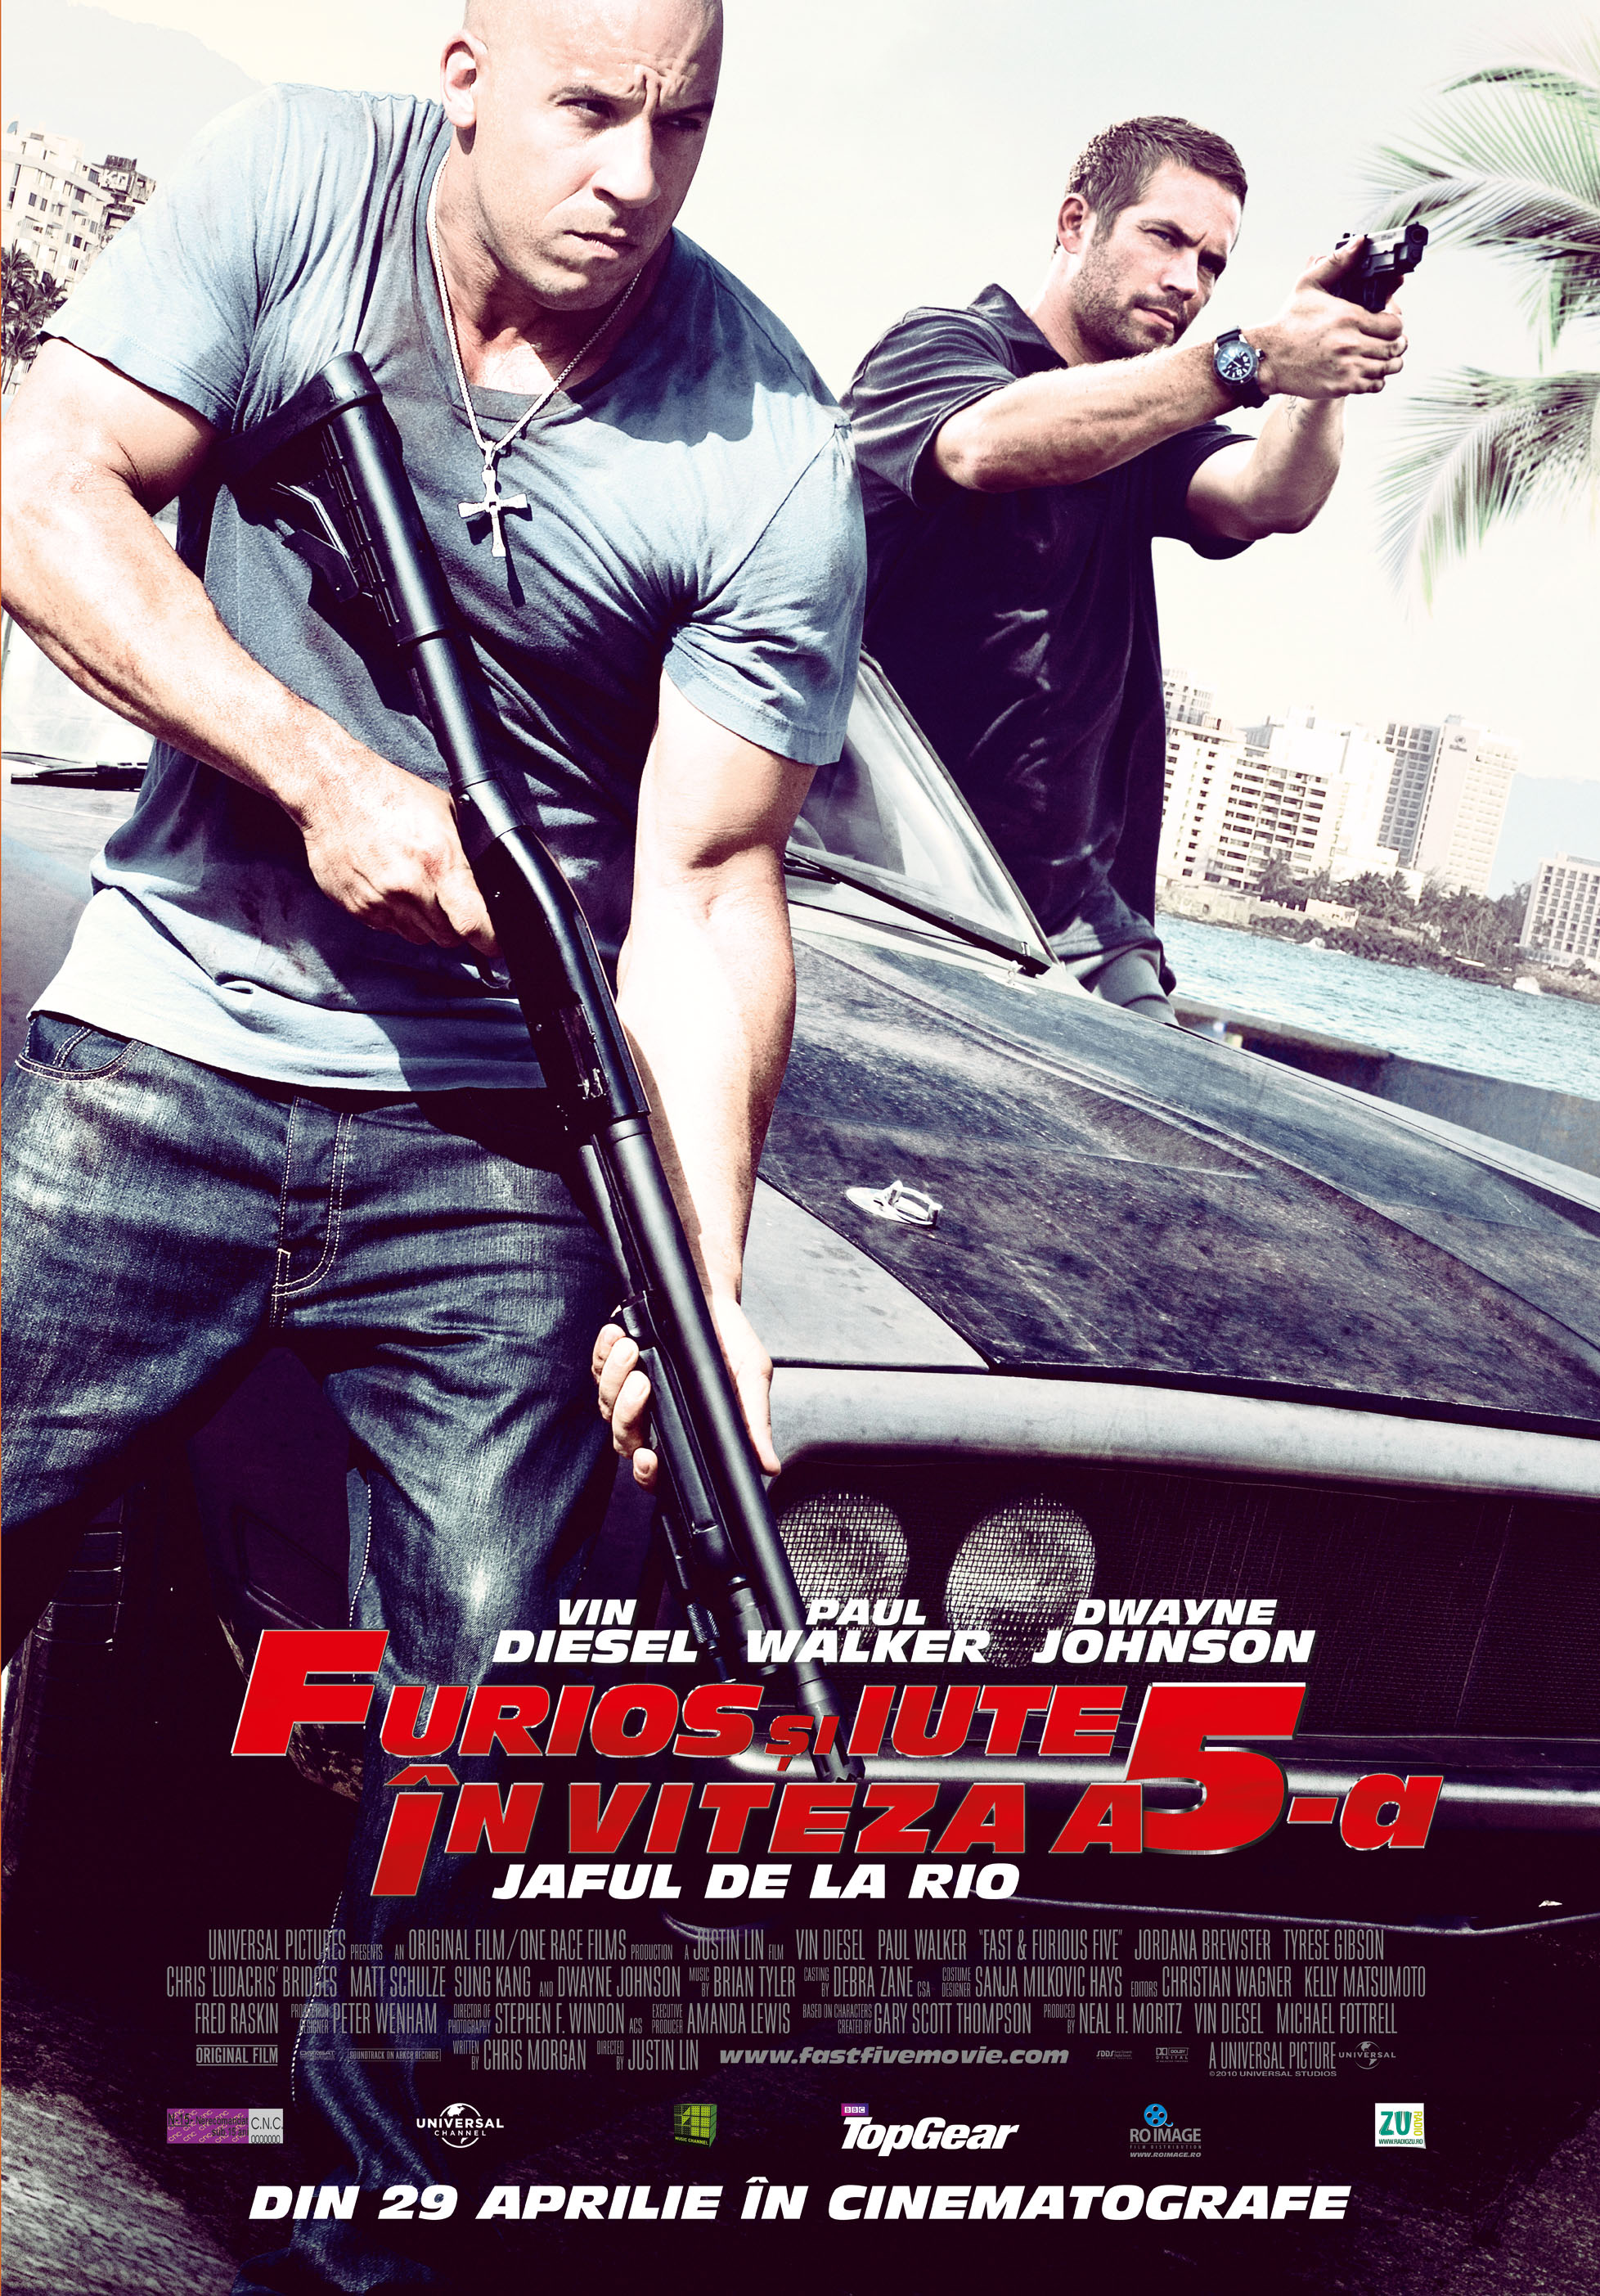 http://static.cinemagia.ro/img/db/movie/55/89/46/fast-five-806770l.jpg